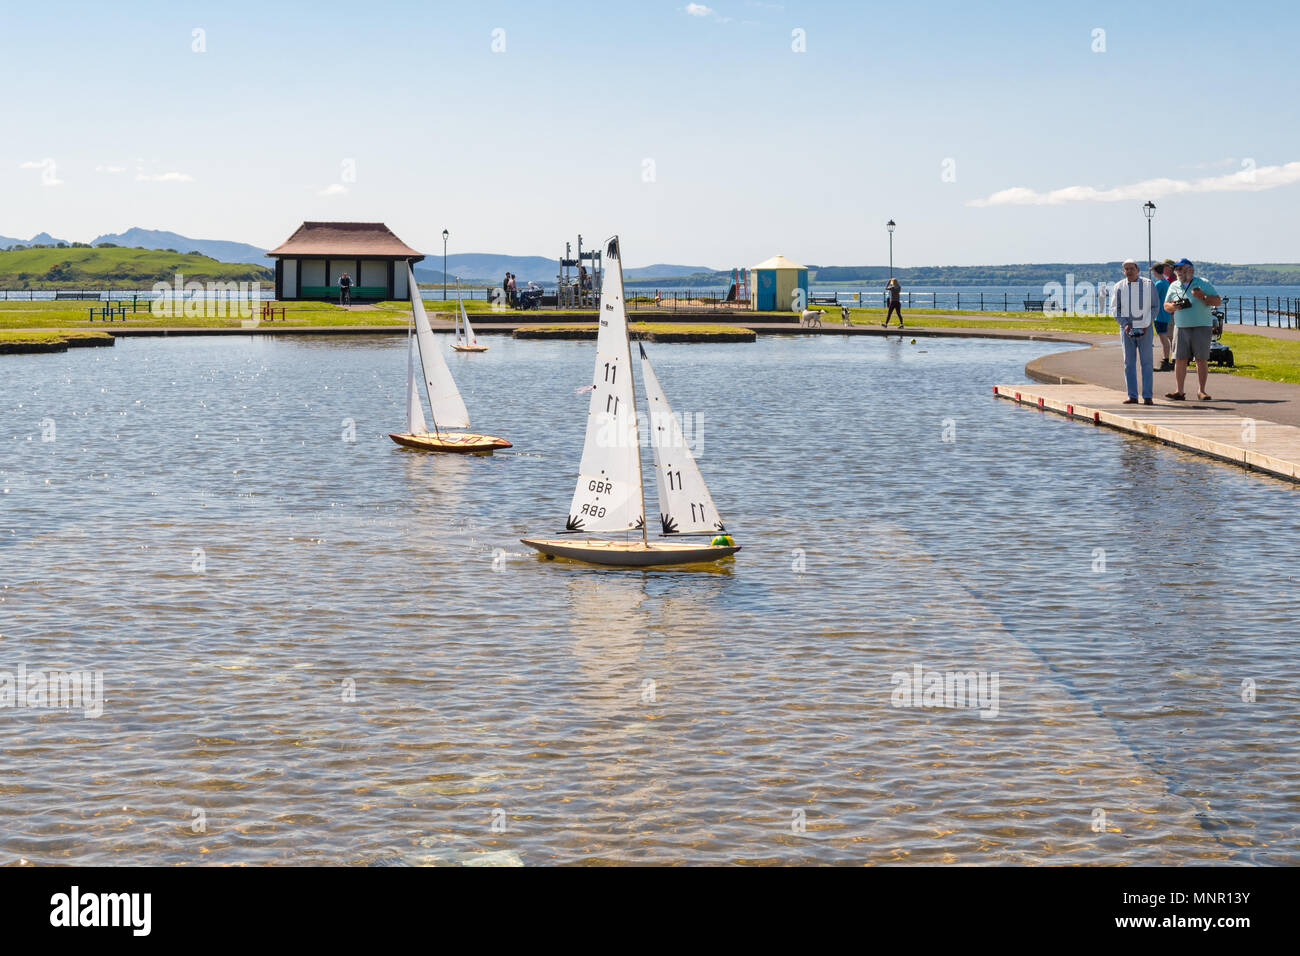 radio controlled vintage model yachts sailing on boating pond - Largs and District Model Boat Club, Largs, North Ayrshire, Scotland, UK - Stock Image